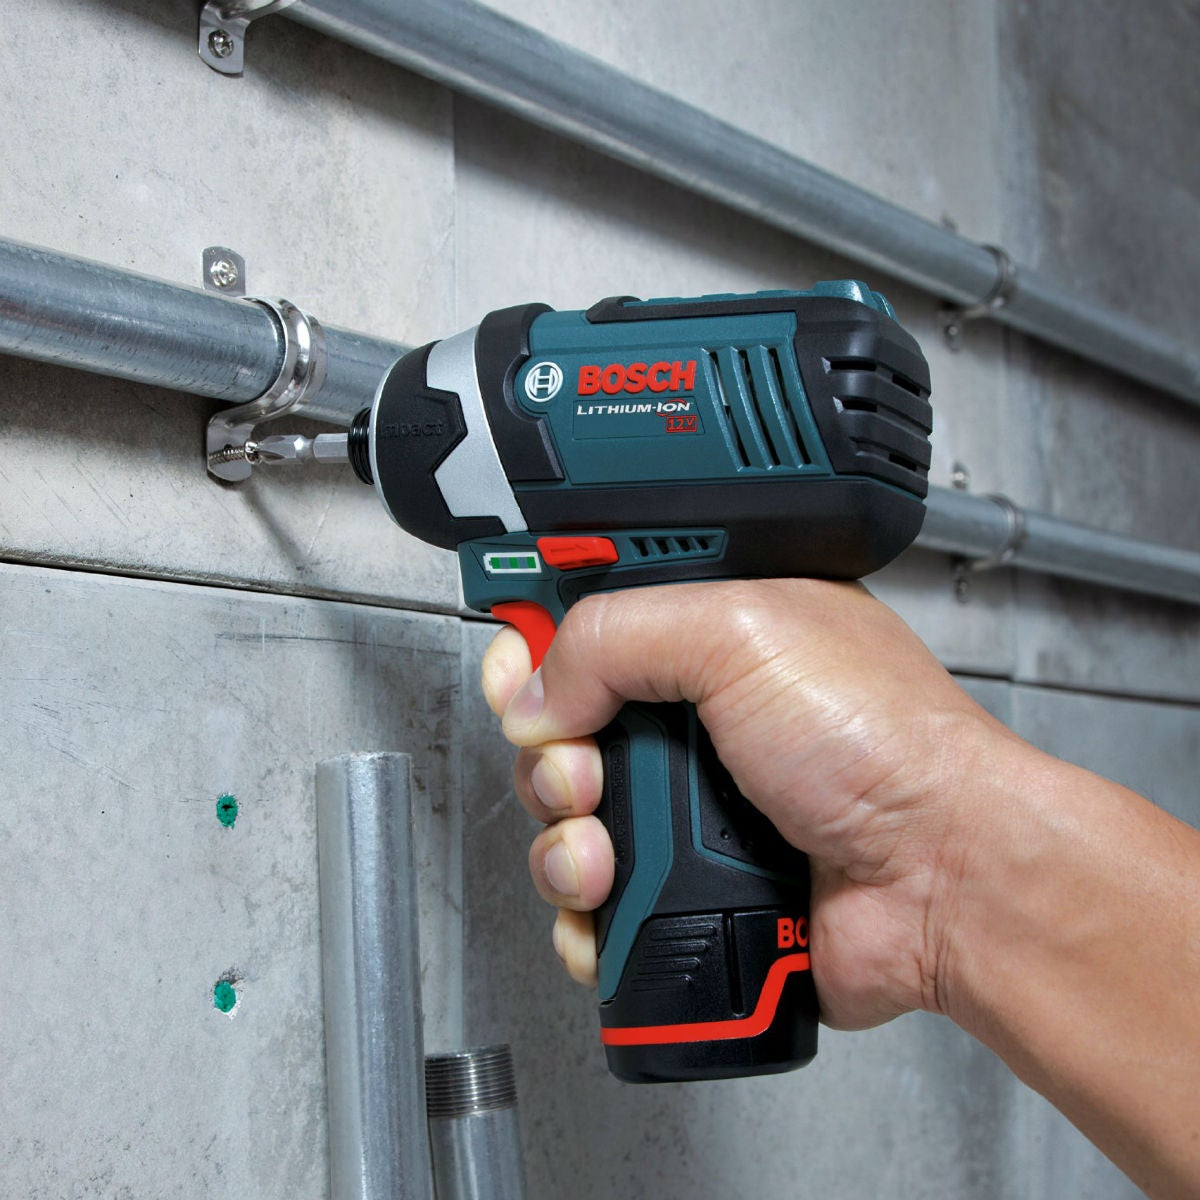 Best Impact Driver Options: Bosch 12-Volt Impact Driver